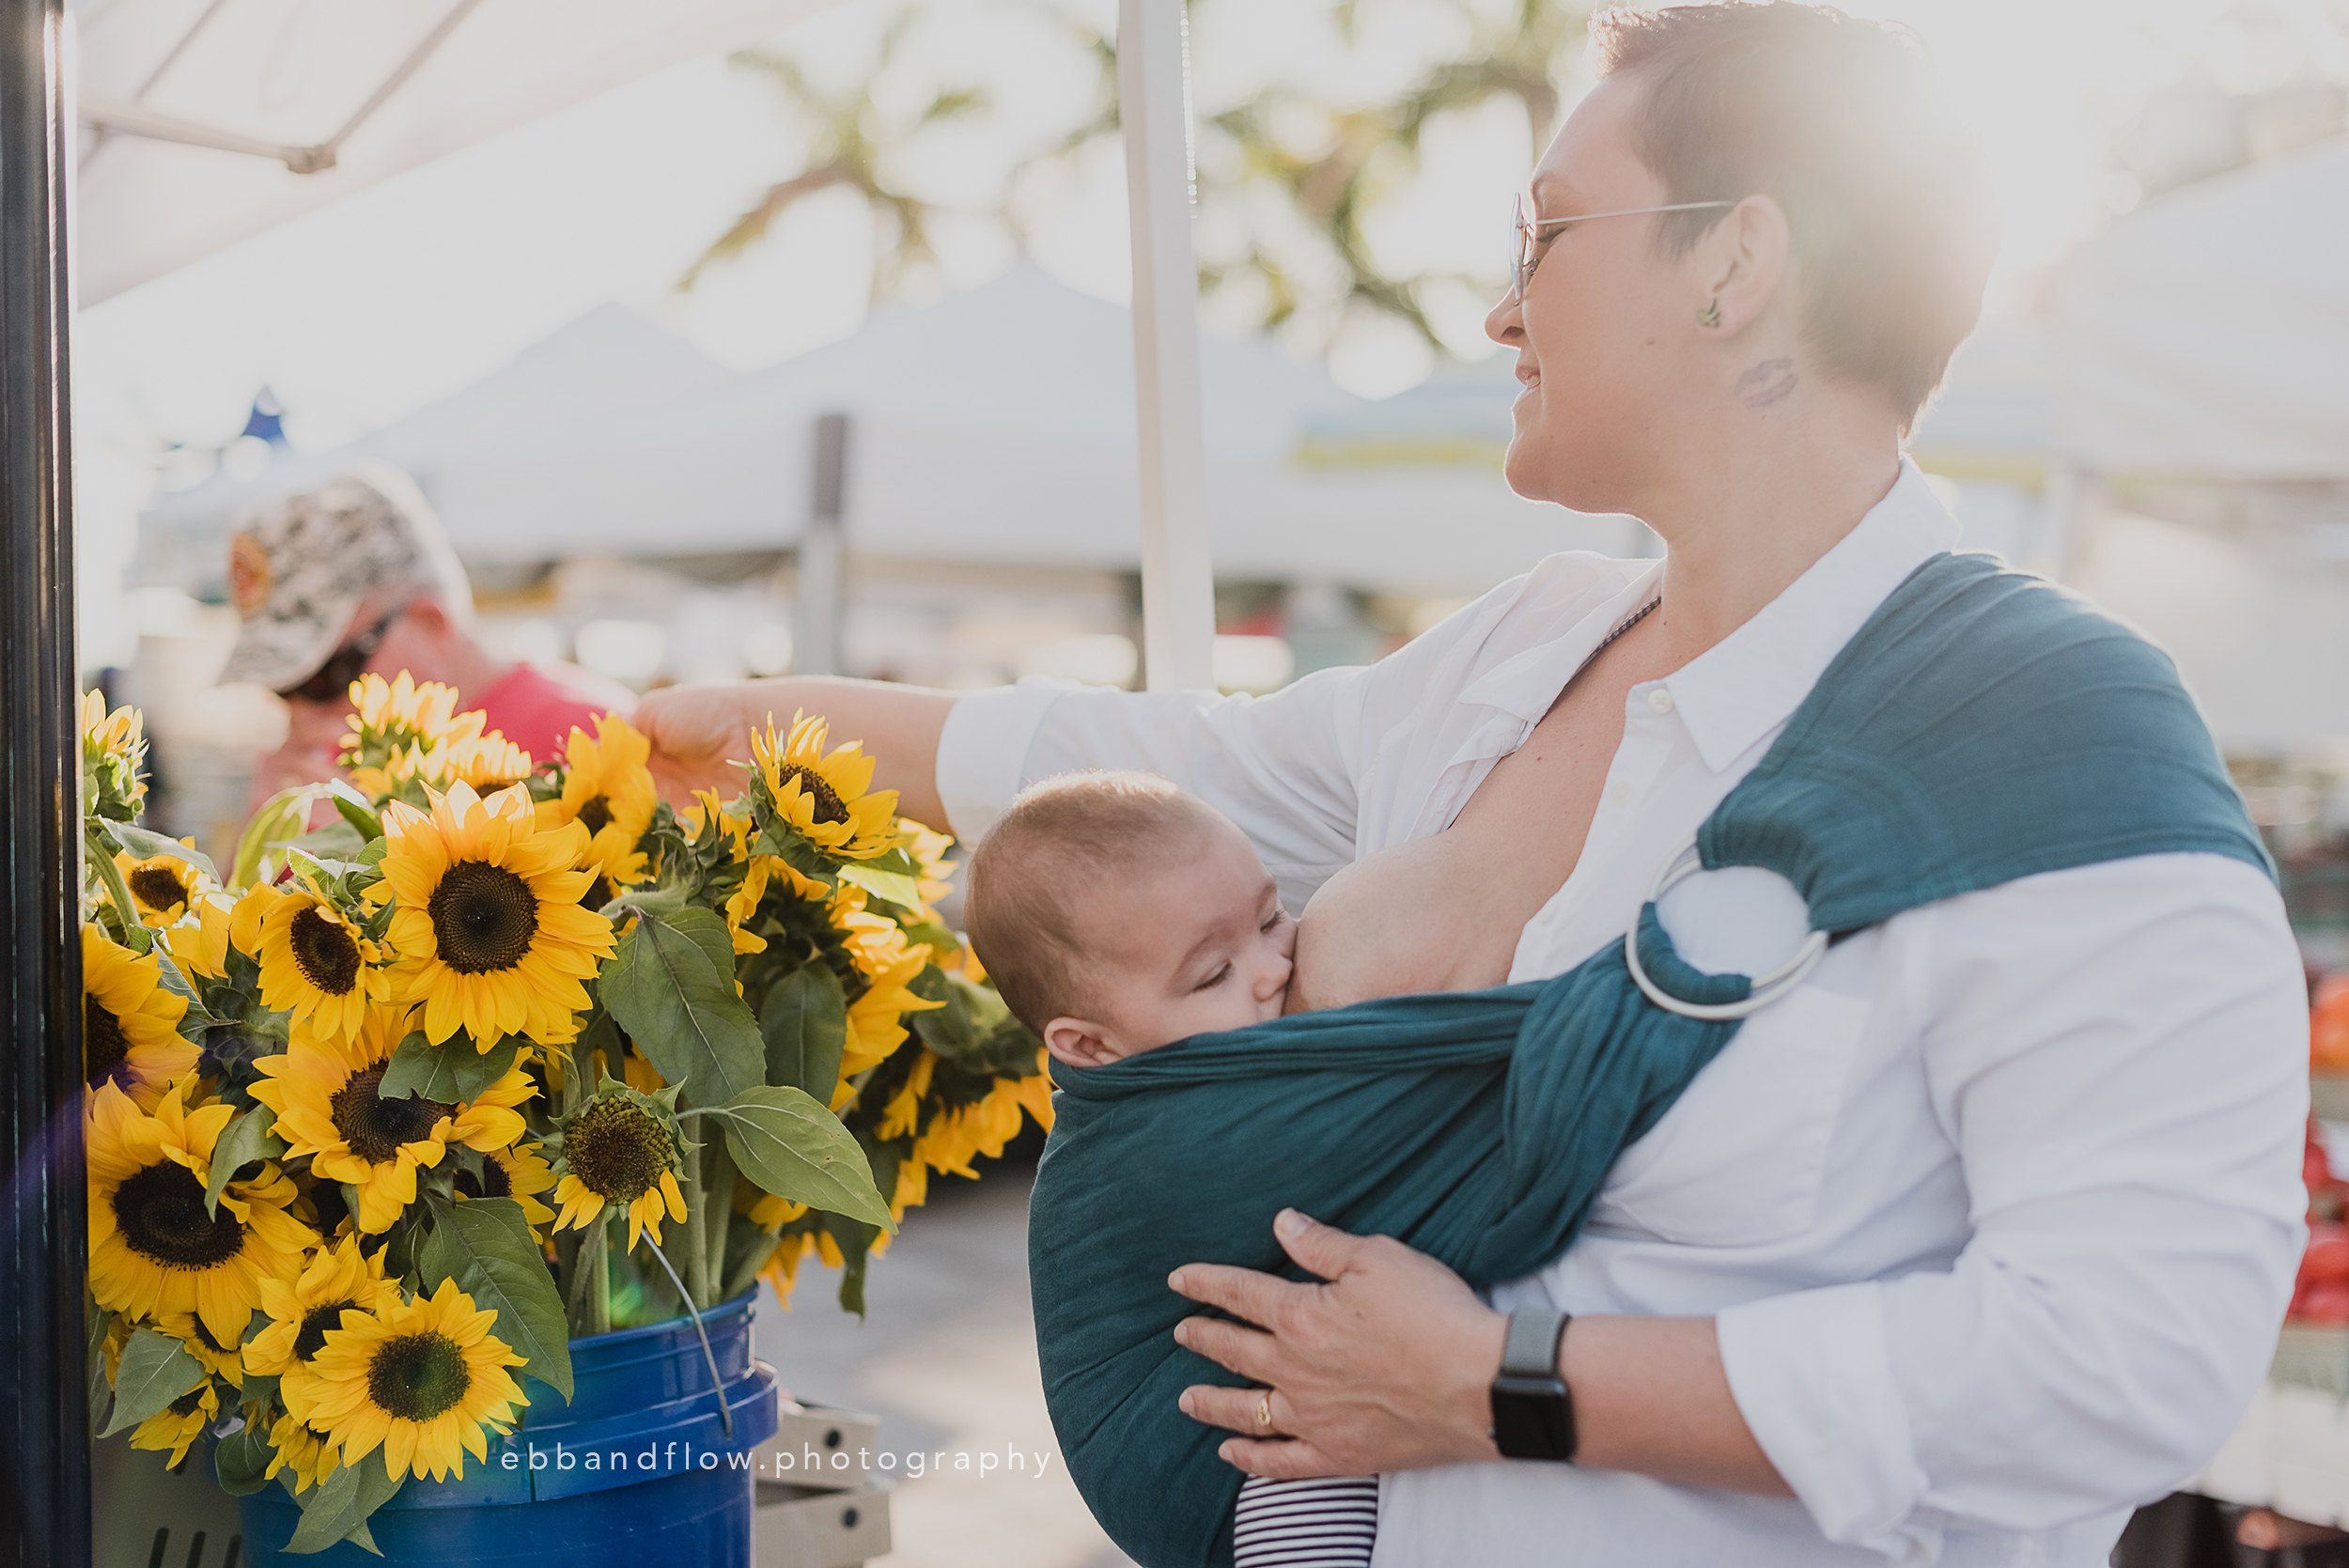 Fort Pierce Breastfeeding Photography - Ebb and Flow Photography -  Ring Sling shopping for flowers at the farmers market.jpg